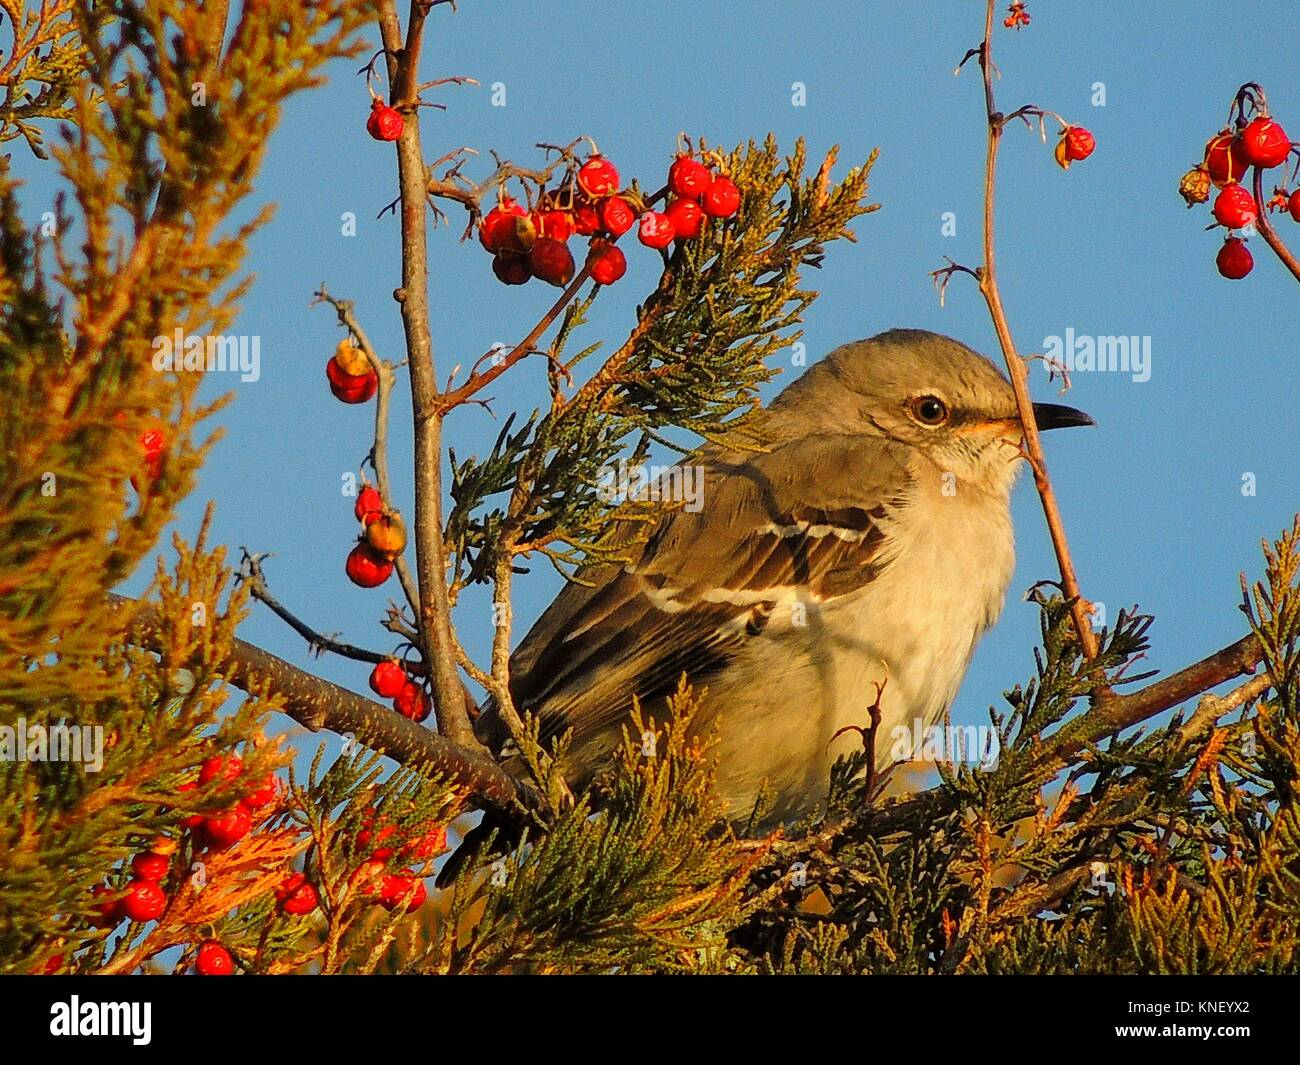 A northern mockingbird, mismus polyglottos, relaxes before indulging in some berries, Pennsylvania, USA. - Stock Image